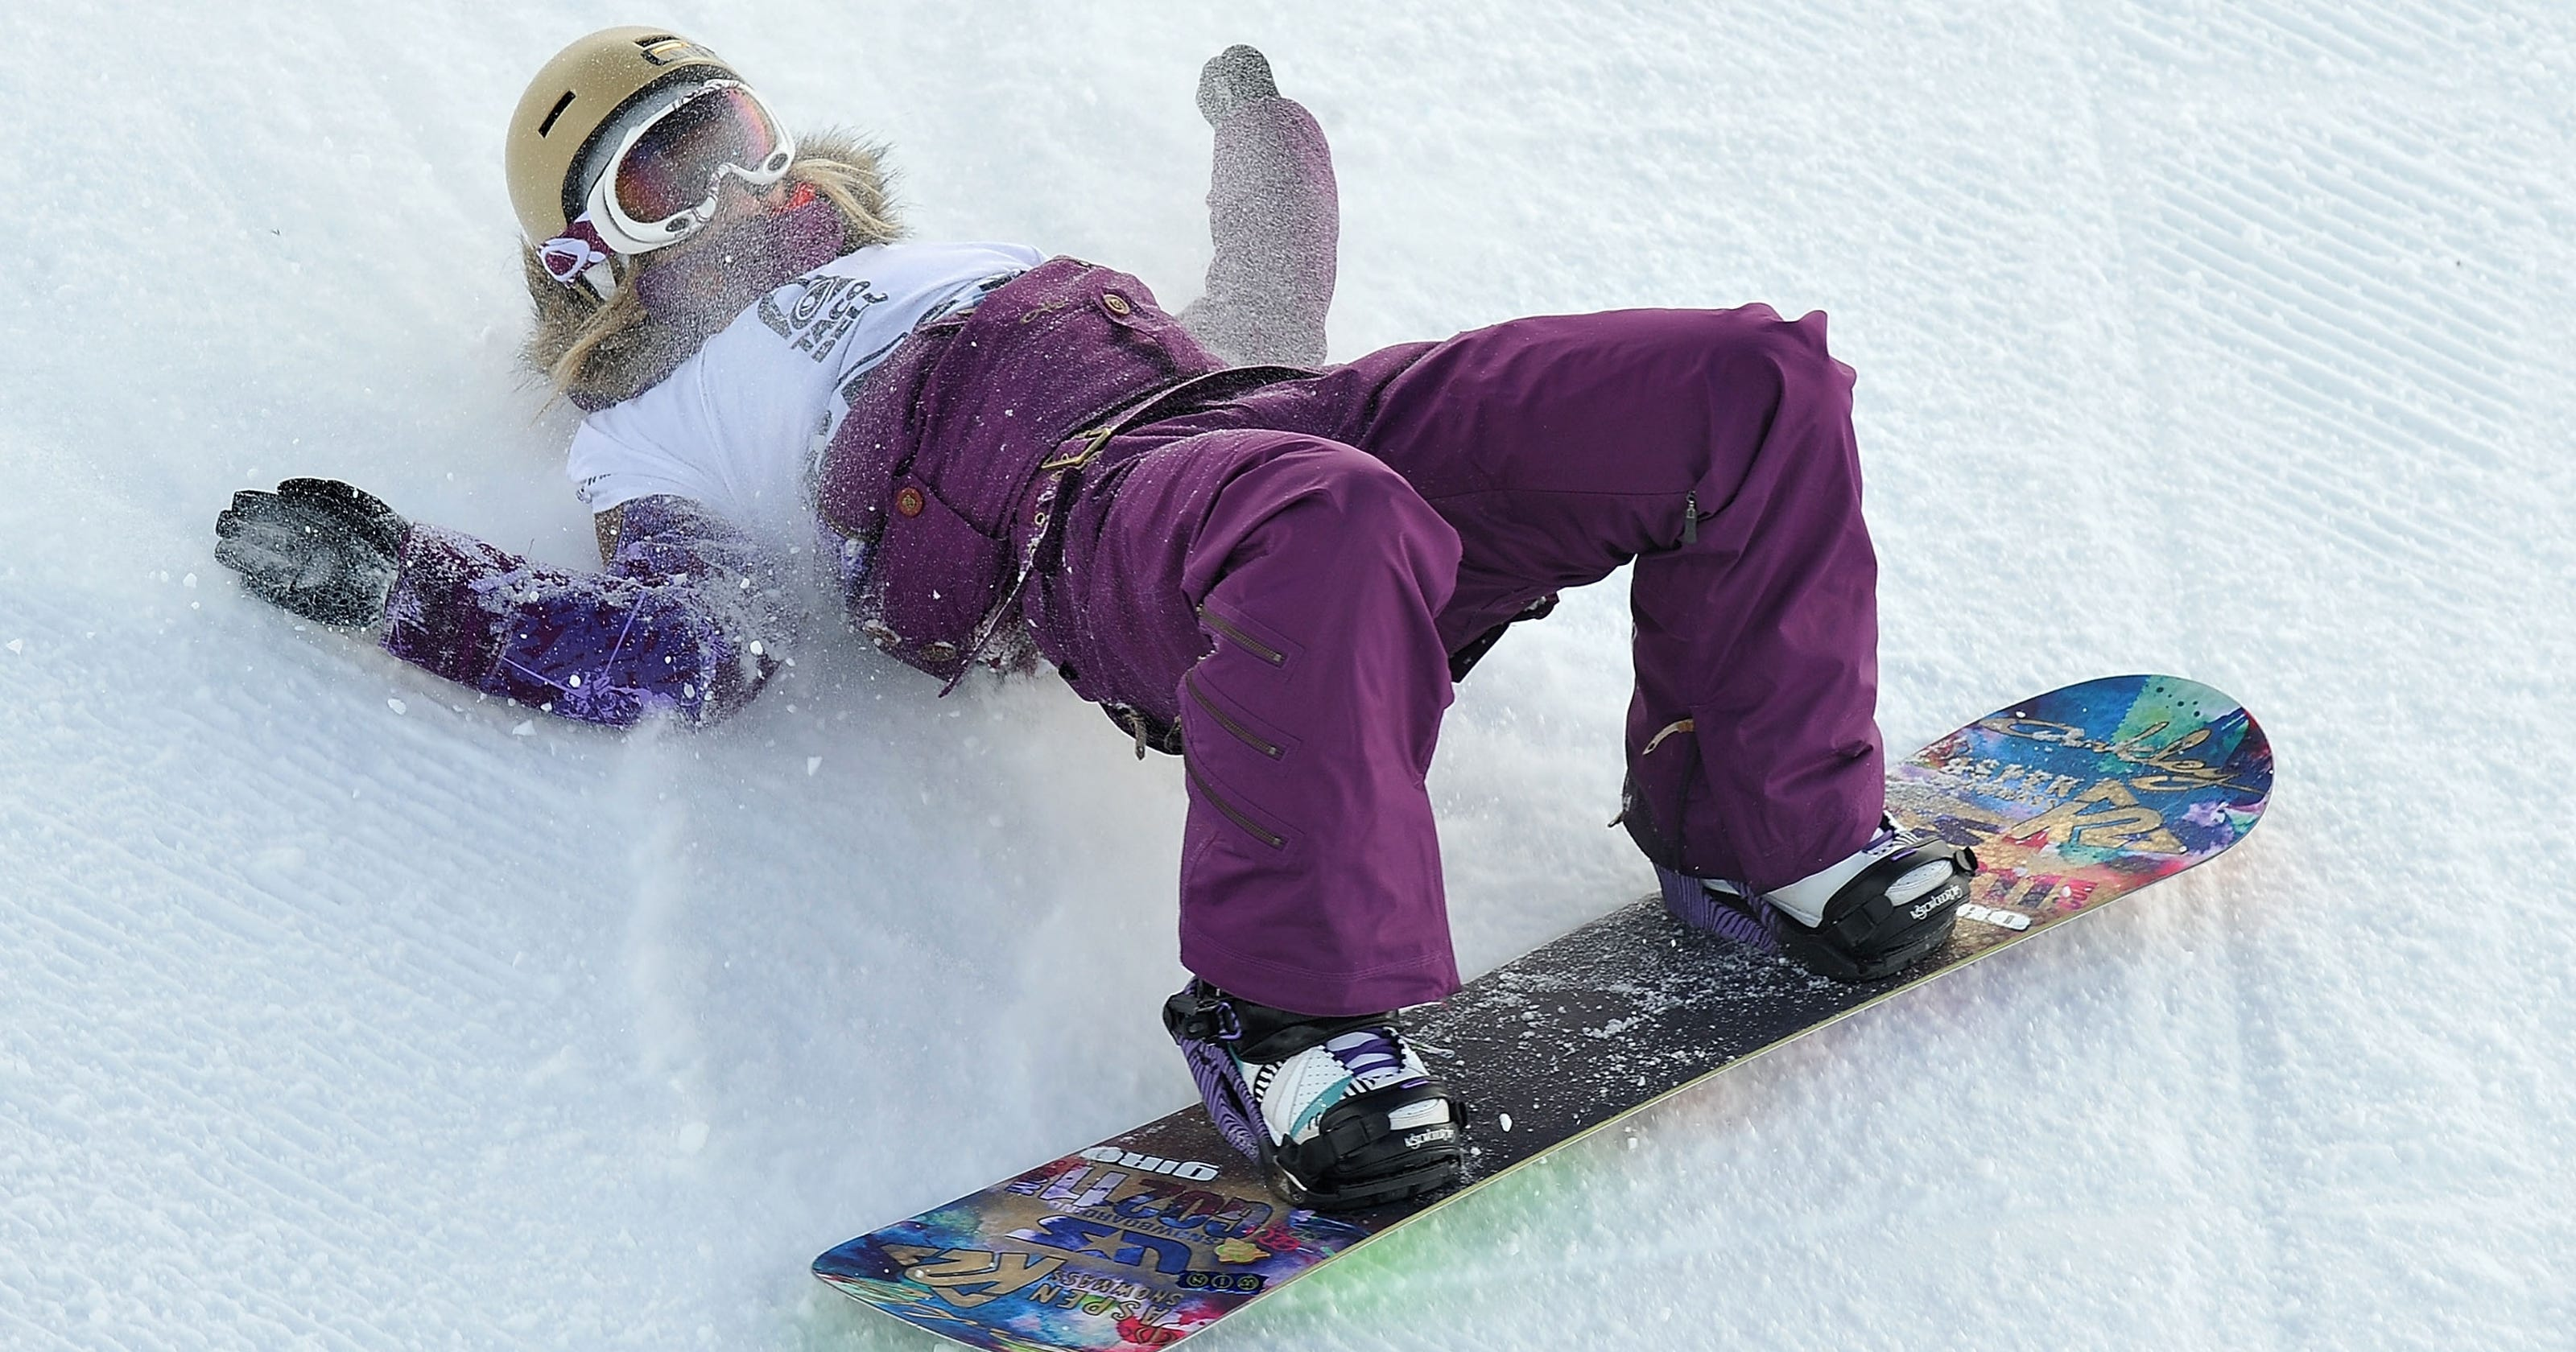 Winter Olympics Having To Relearn All >> Head Injuries A Rising Danger For Snowboarders Skiers